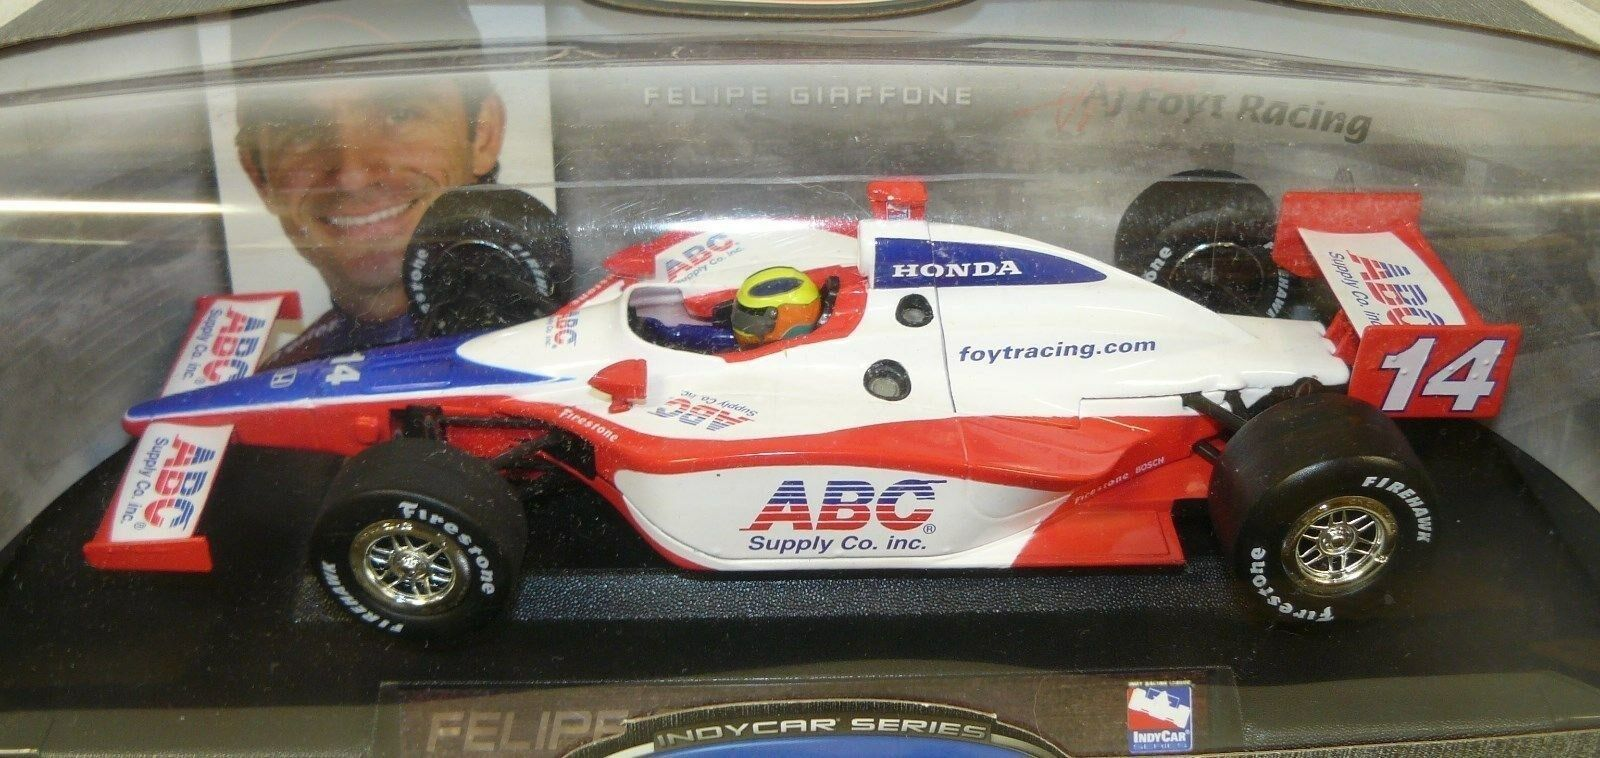 1 18  Felipe Graffone Indy Car, in the box, the box may or may not show